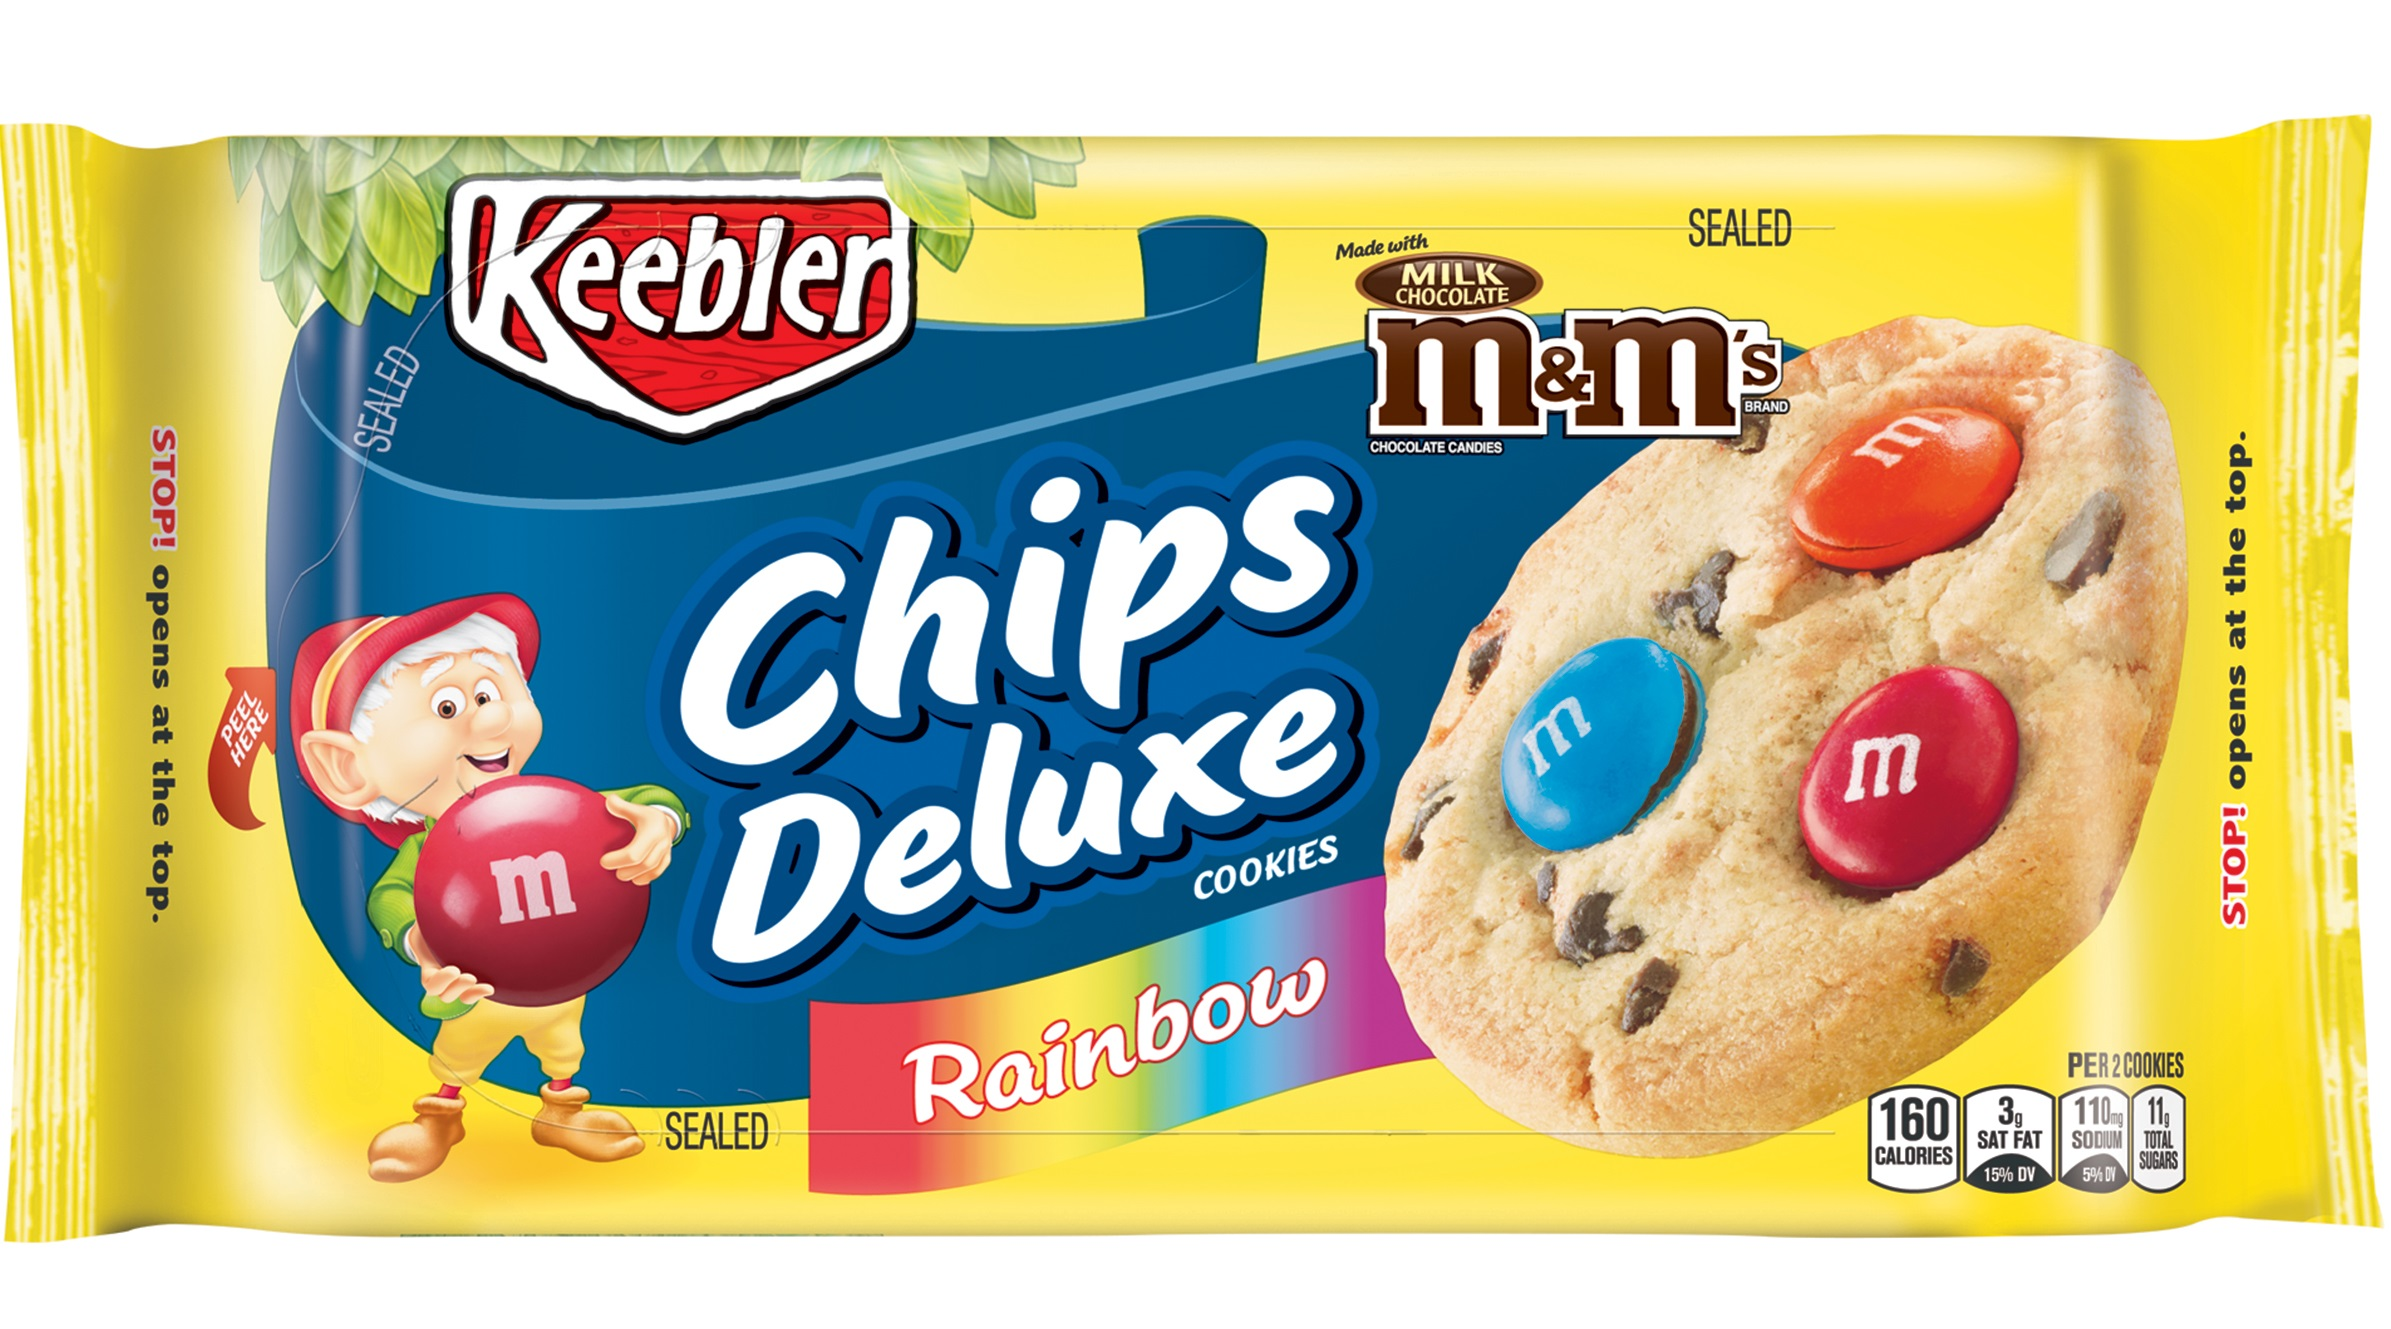 Keebler Summer Chips Deluxe Rainbow Cookies